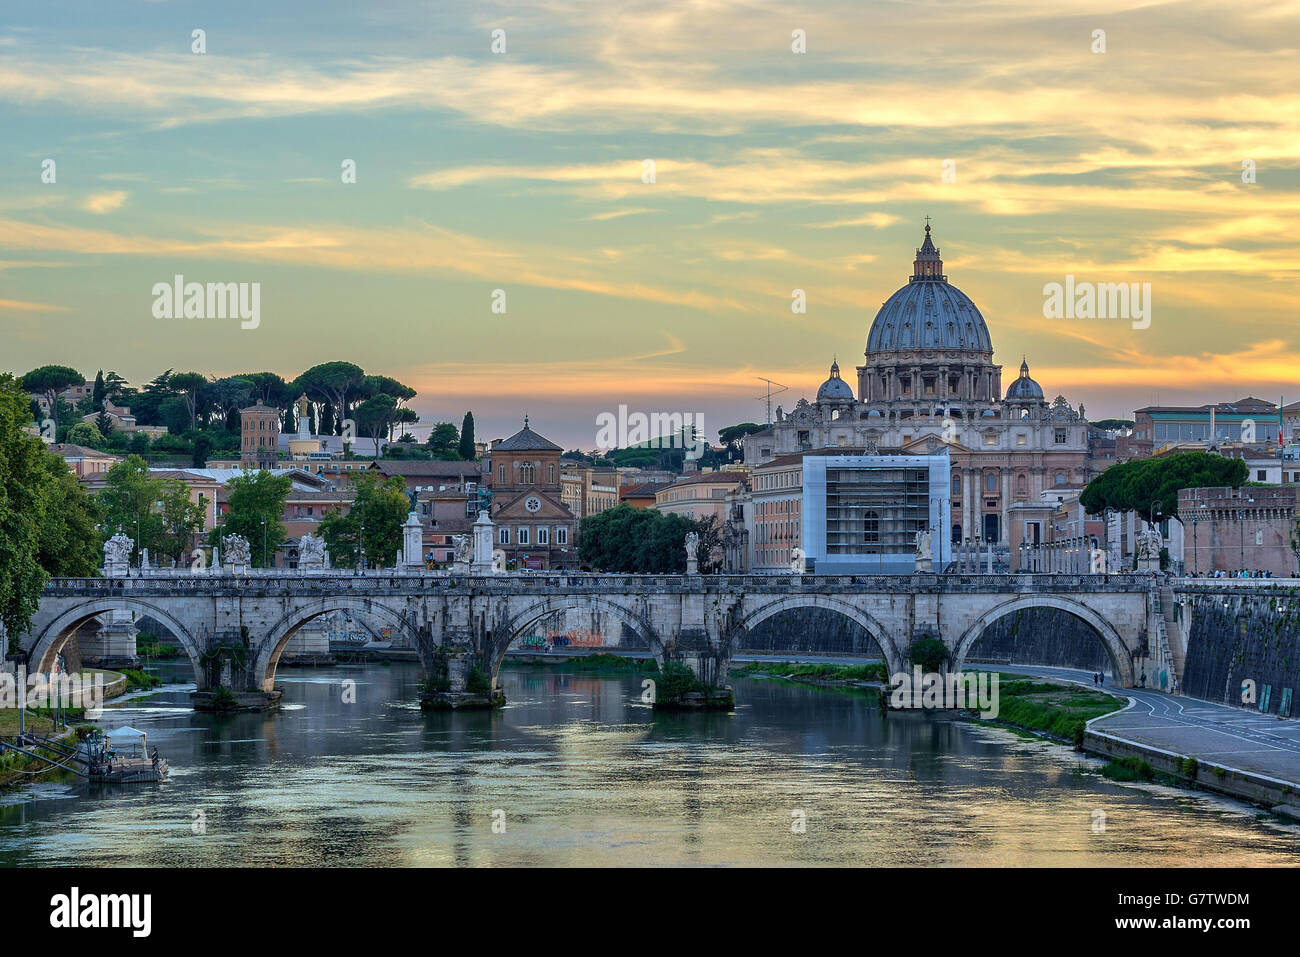 Sunset at Rome with Saint Peter Basilica, Rome, Italy - Stock Image